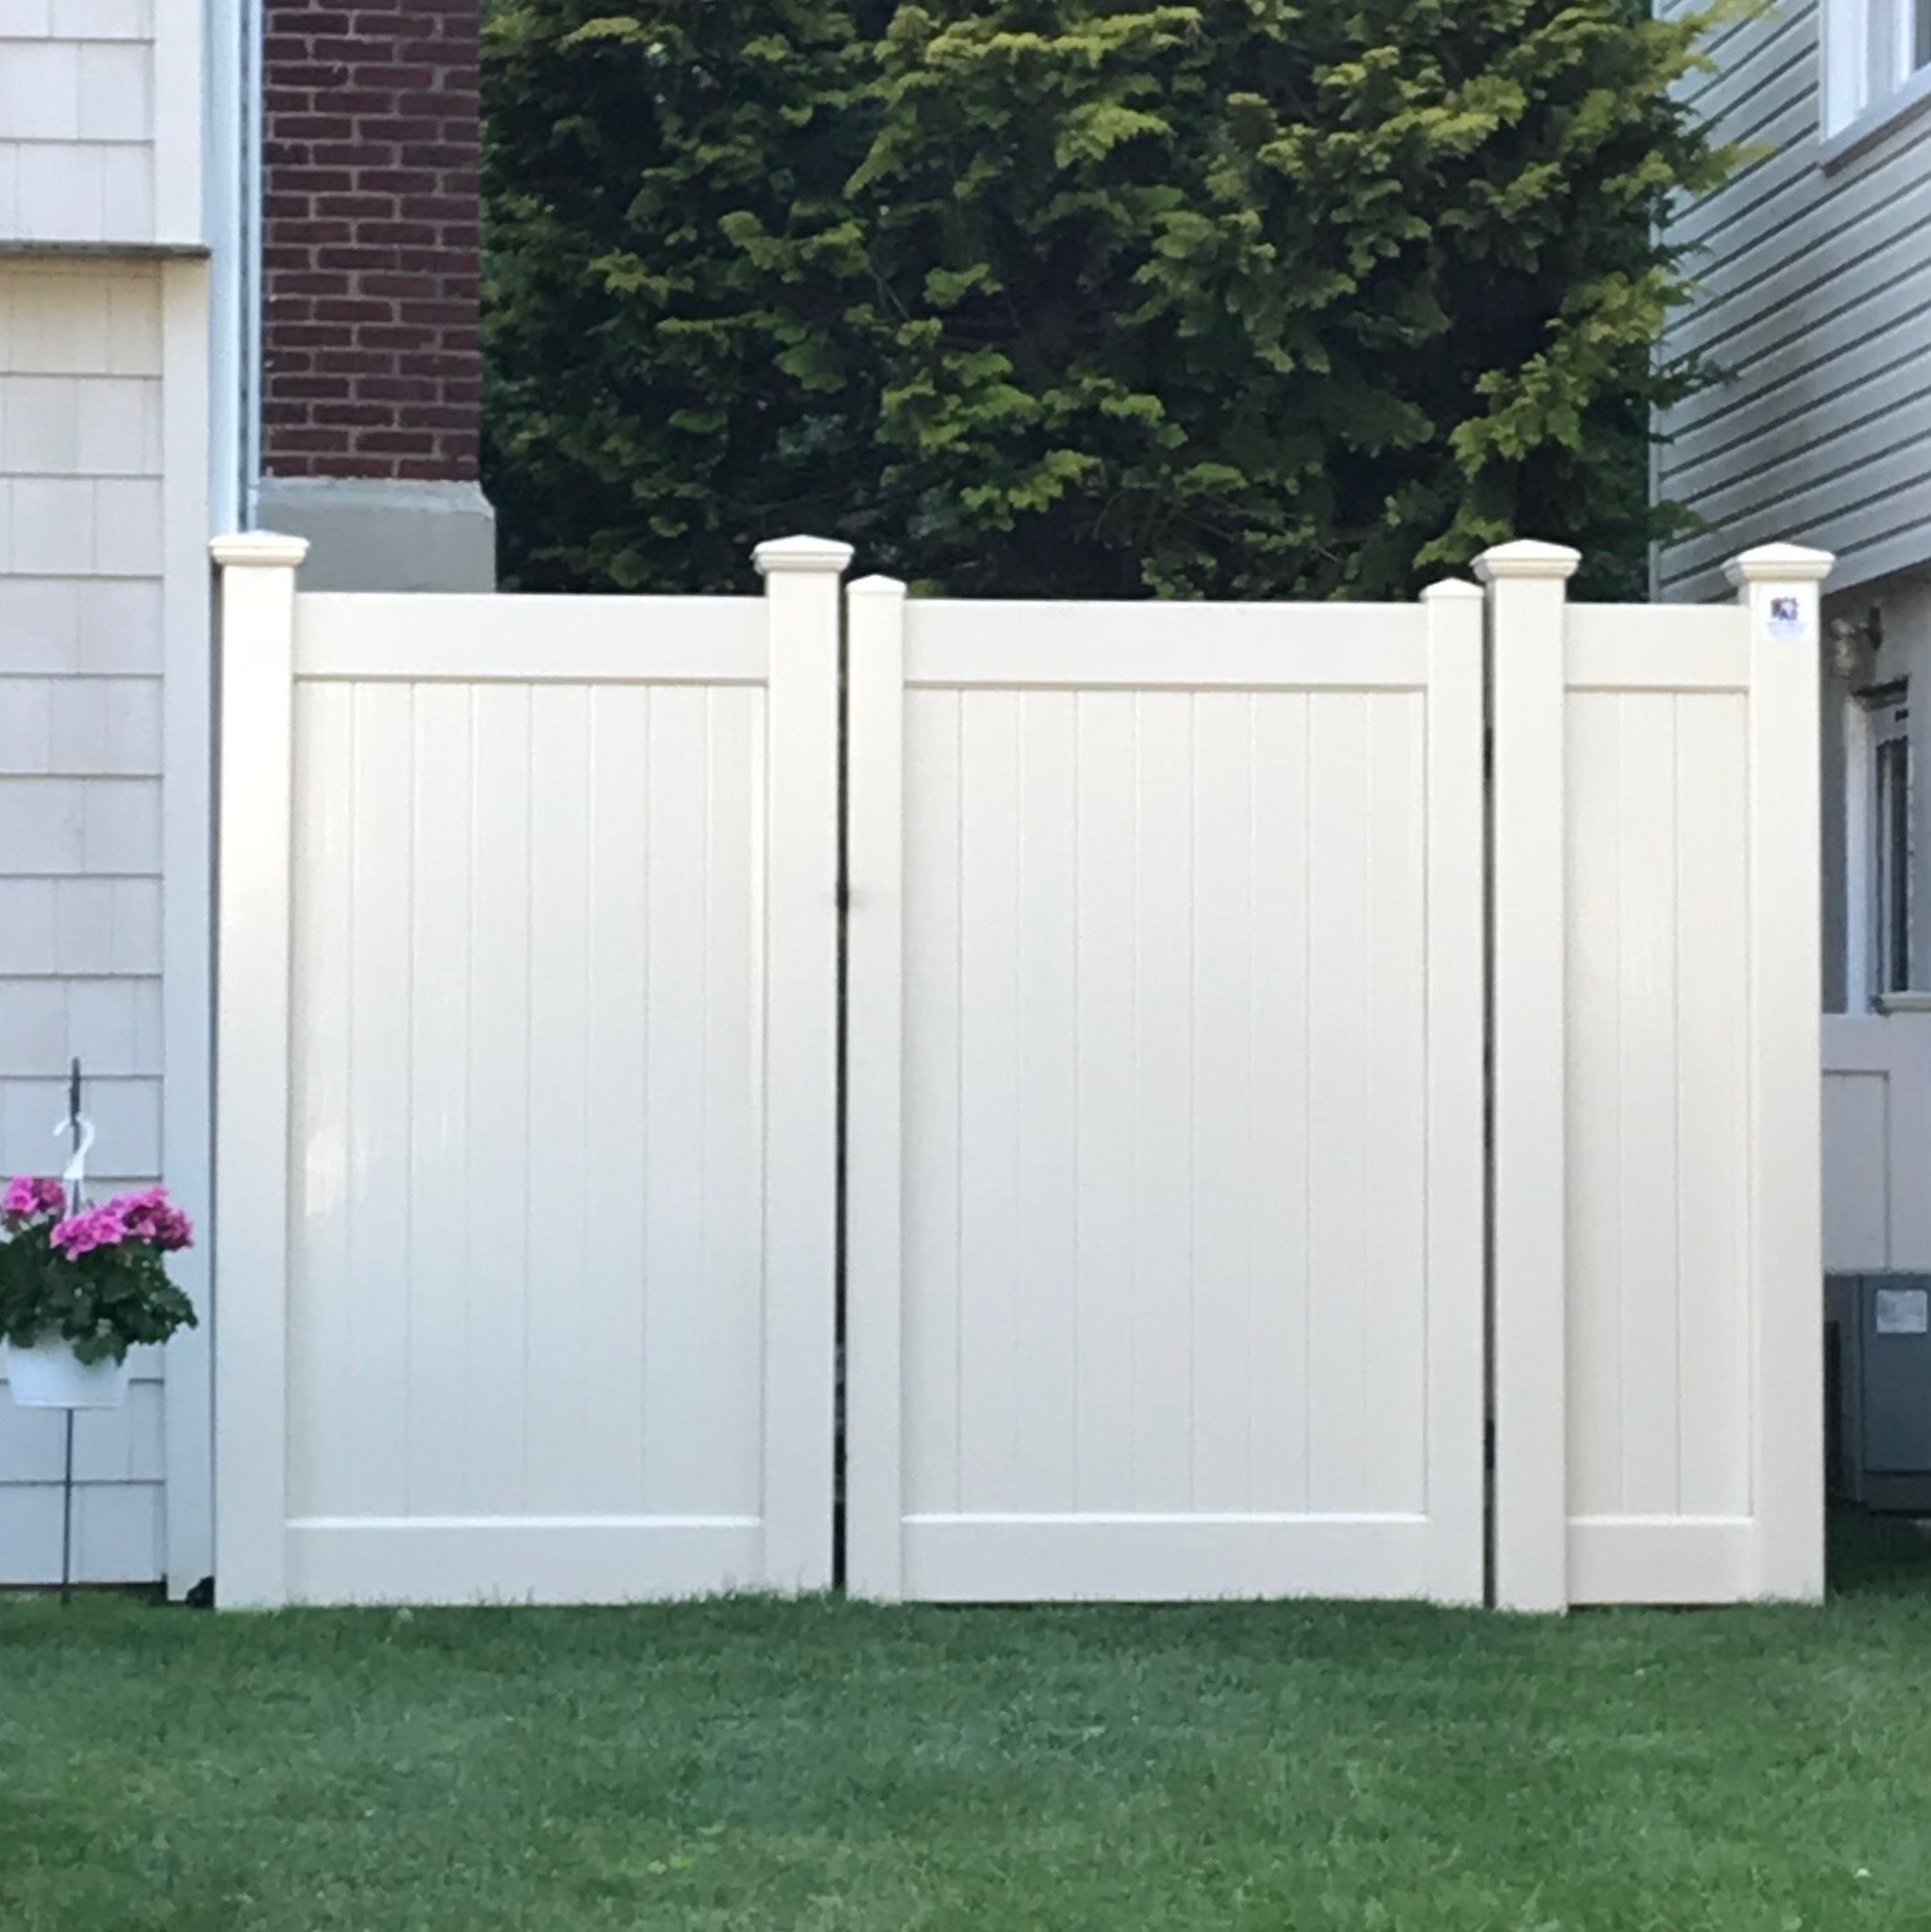 6 Tan Infinity Solid Pvc Fences And An Internal Double